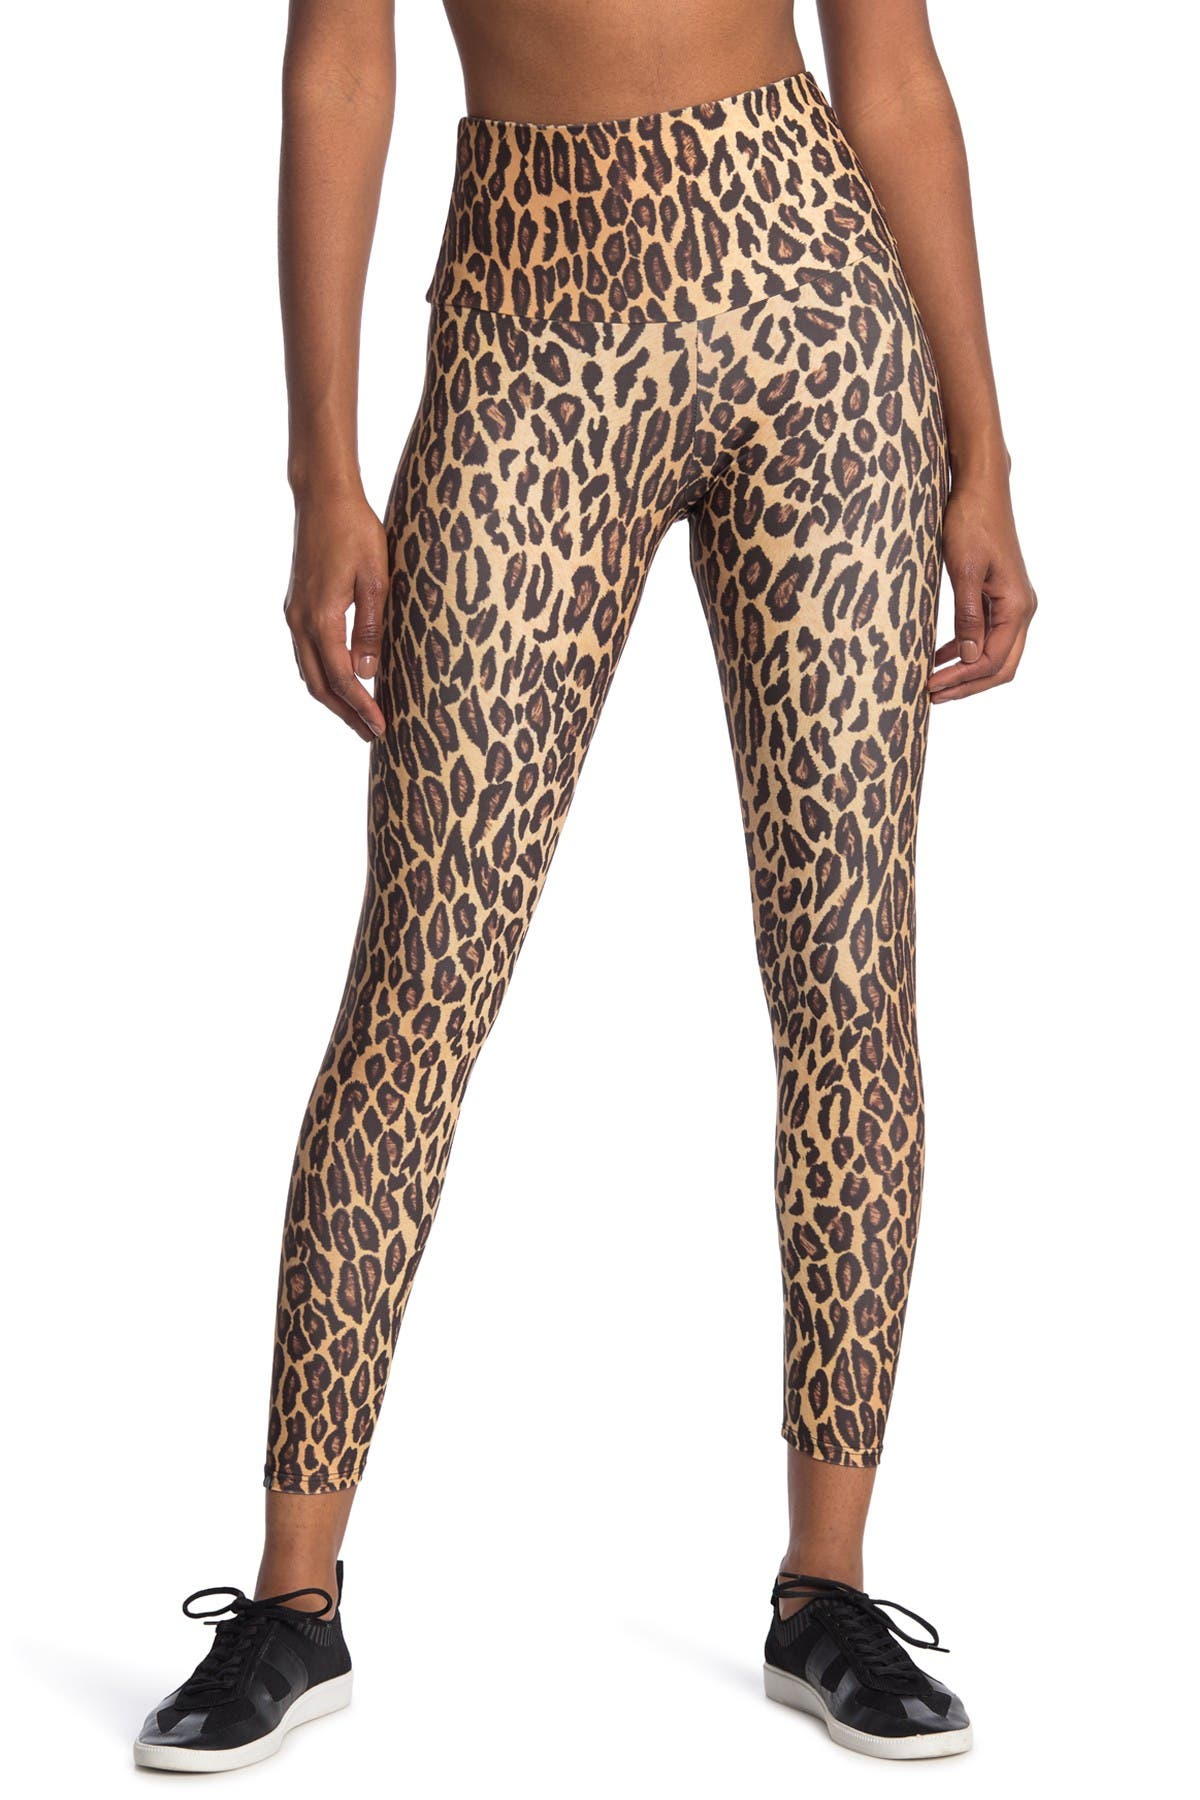 Image of ONZIE High Waist Full Length Leggings